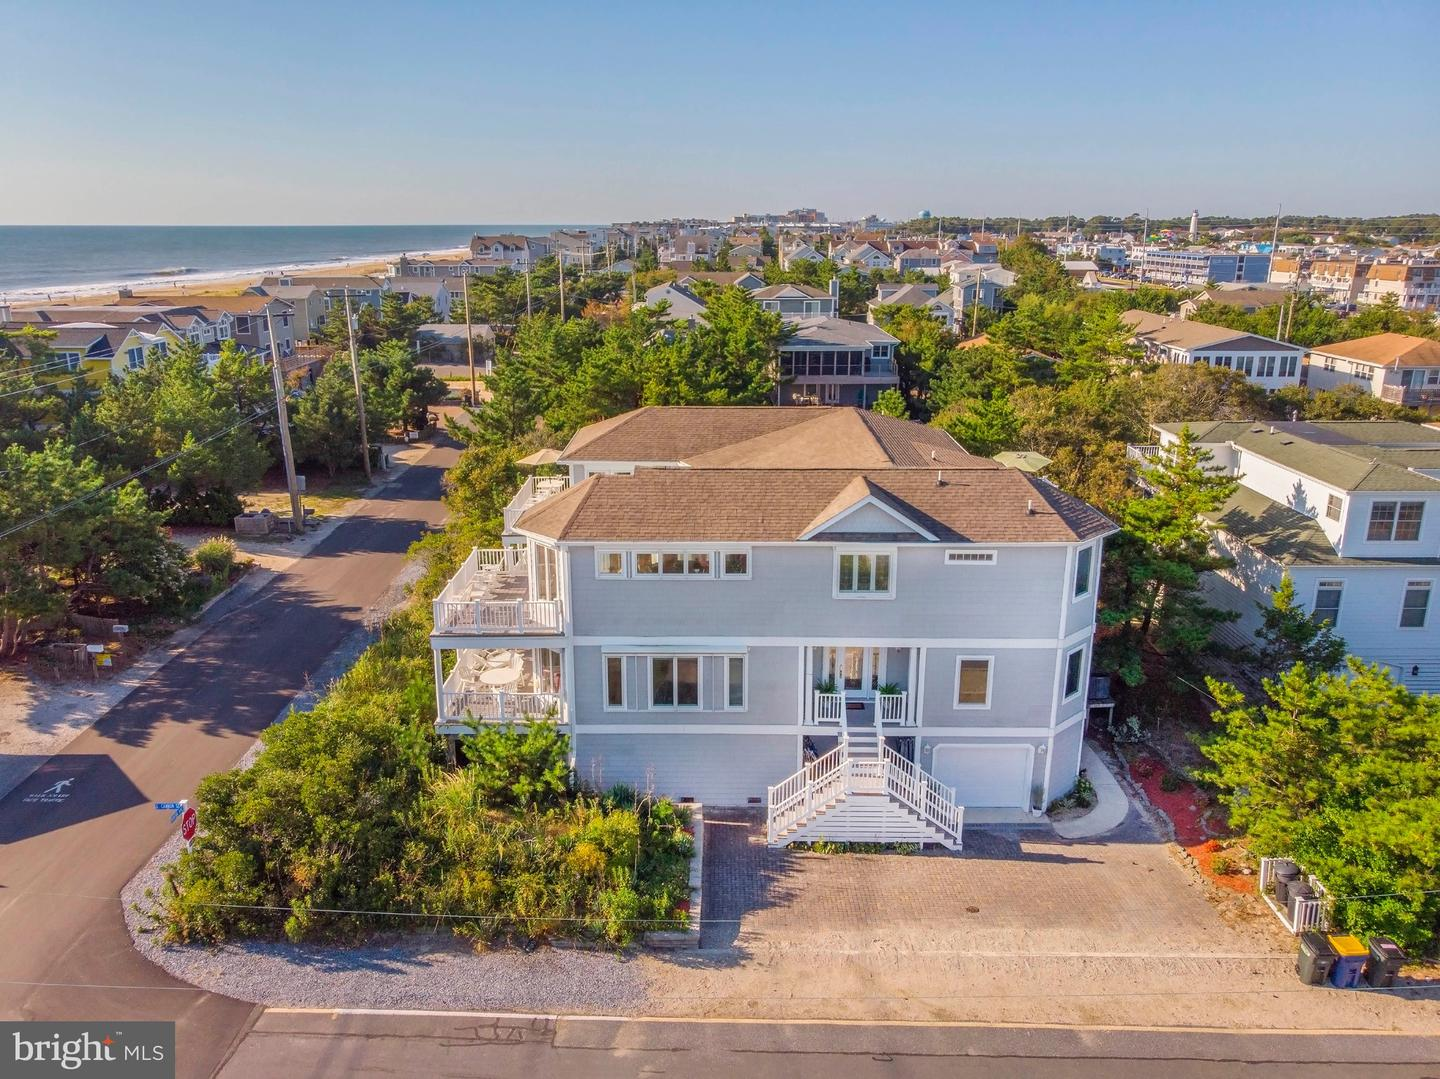 DESU147280-302007867634-2019-08-31-13-42-10 810 Bunting Ave | Fenwick Island, DE Real Estate For Sale | MLS# Desu147280  - 1st Choice Properties